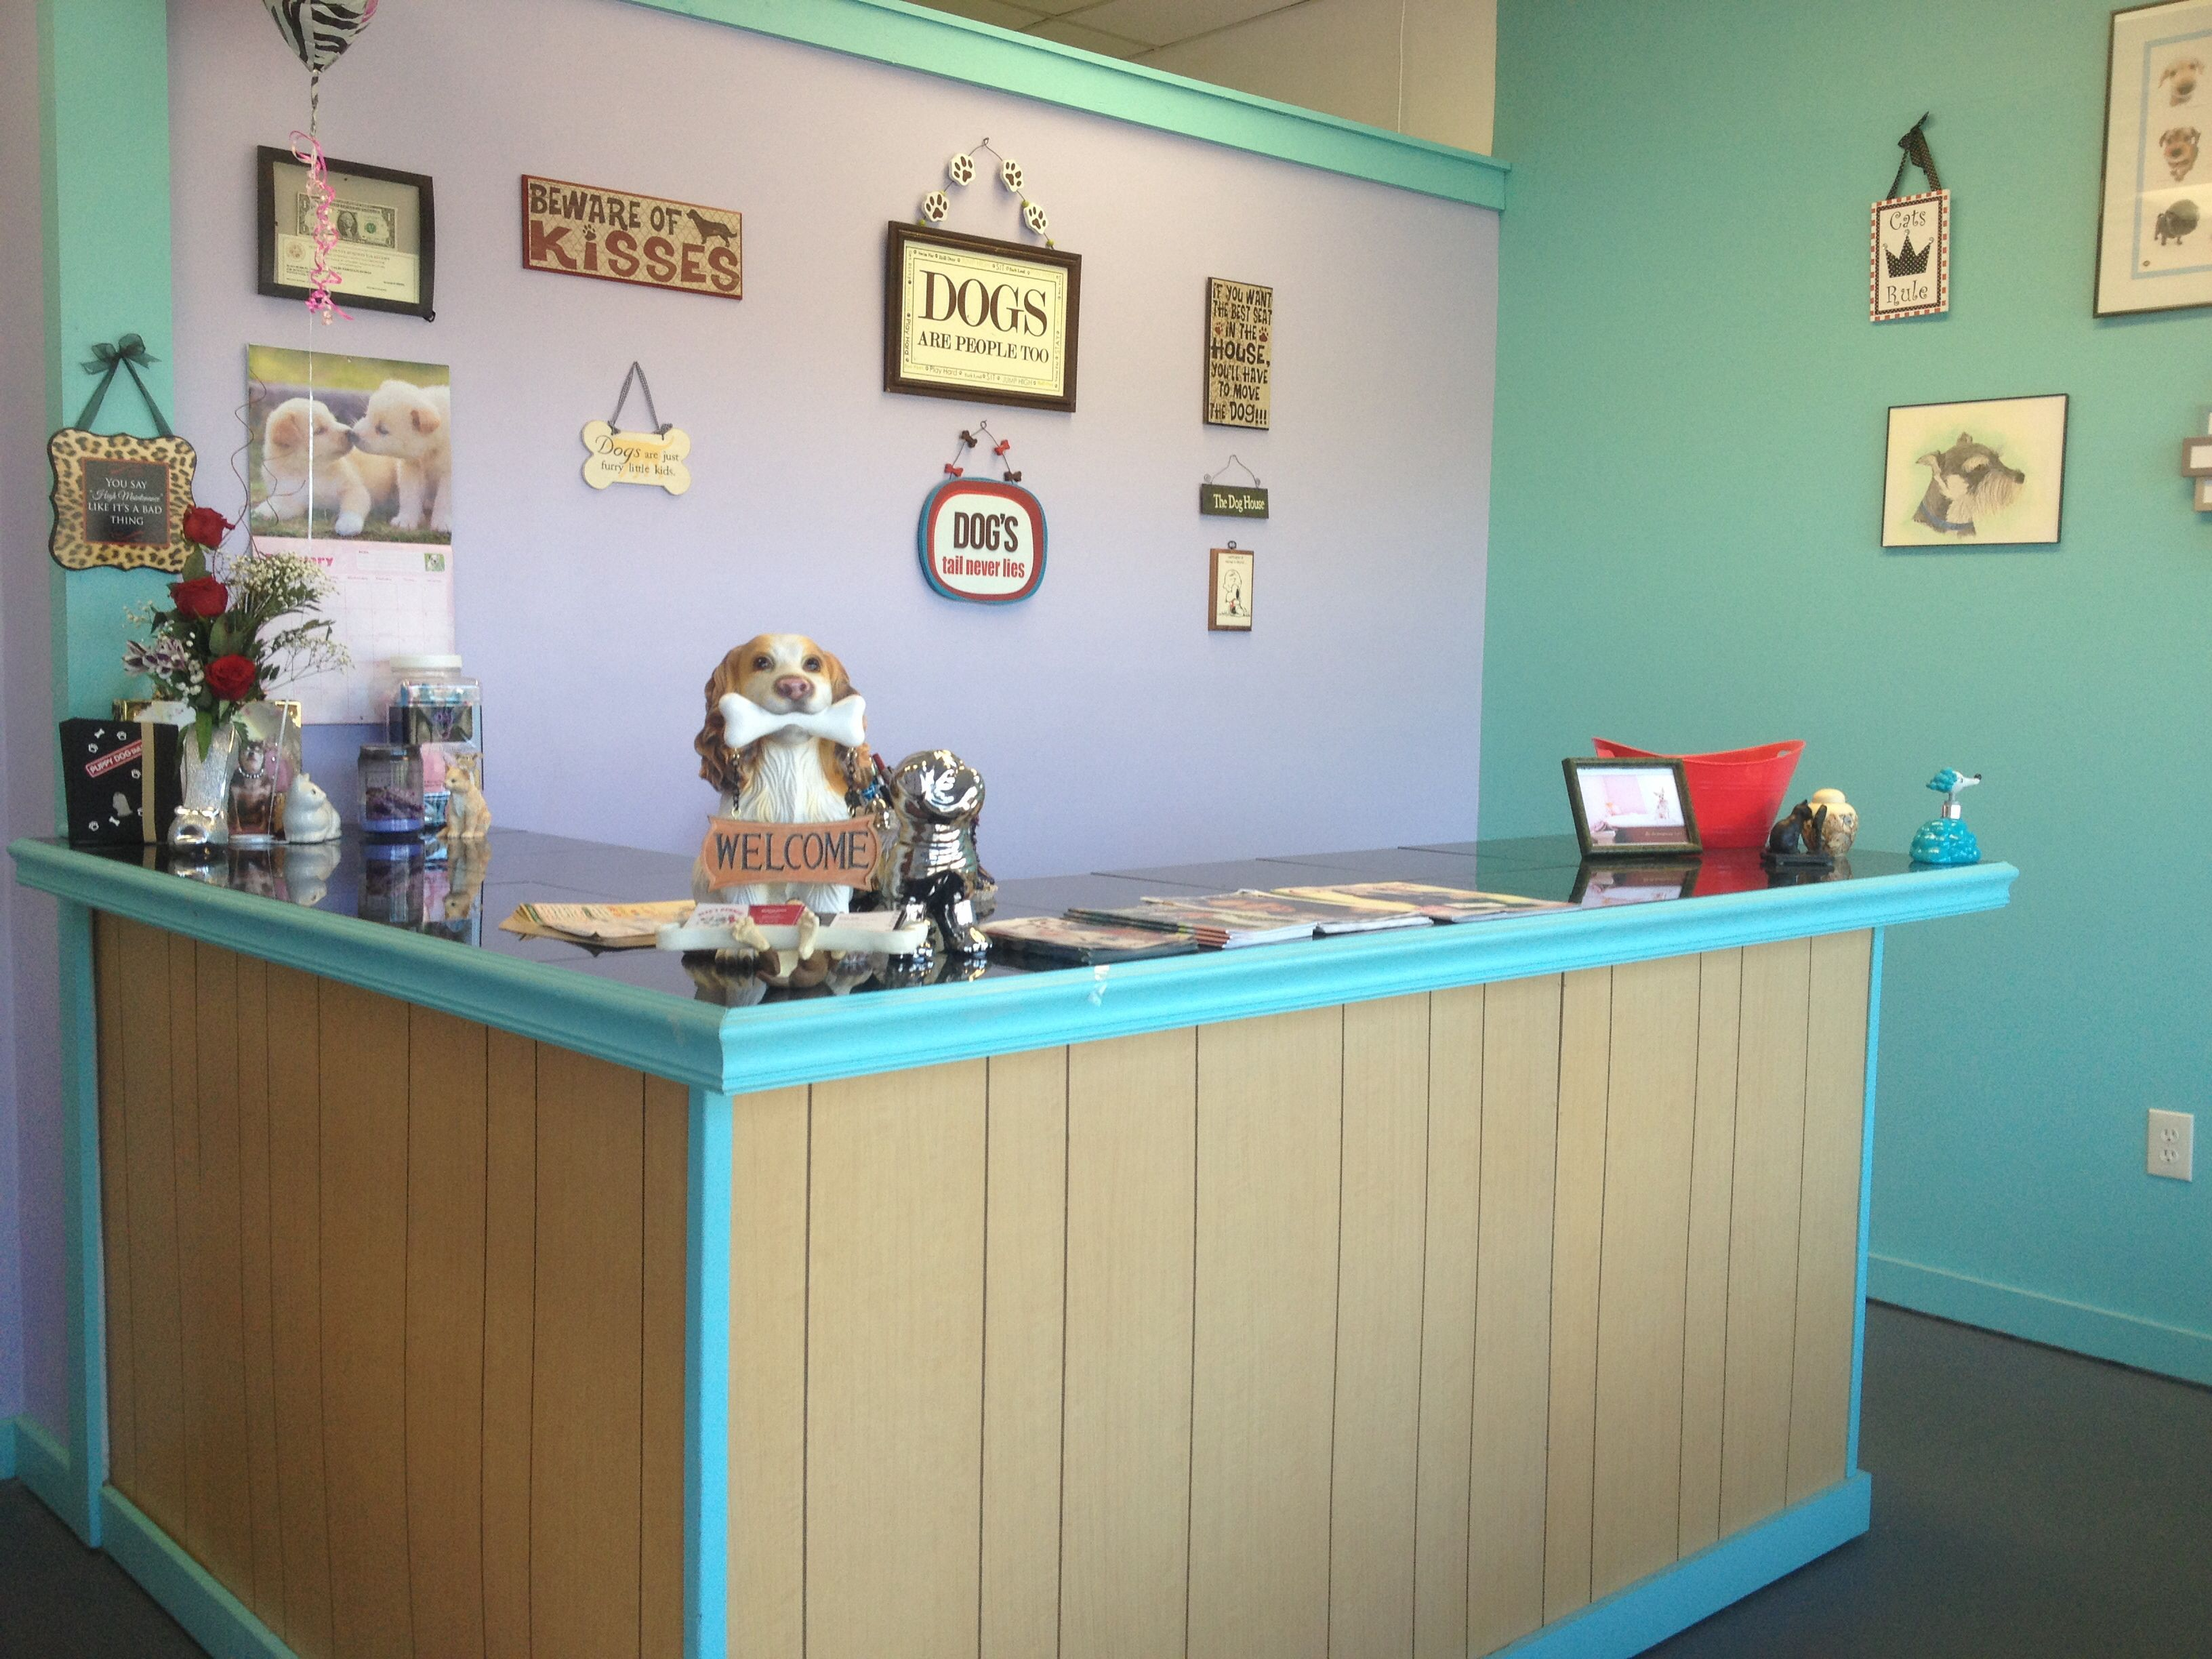 Pin By Joy Lee On Salon For Grooming Ideas In 2020 Dog Grooming Shop Pet Grooming Business Grooming Salon